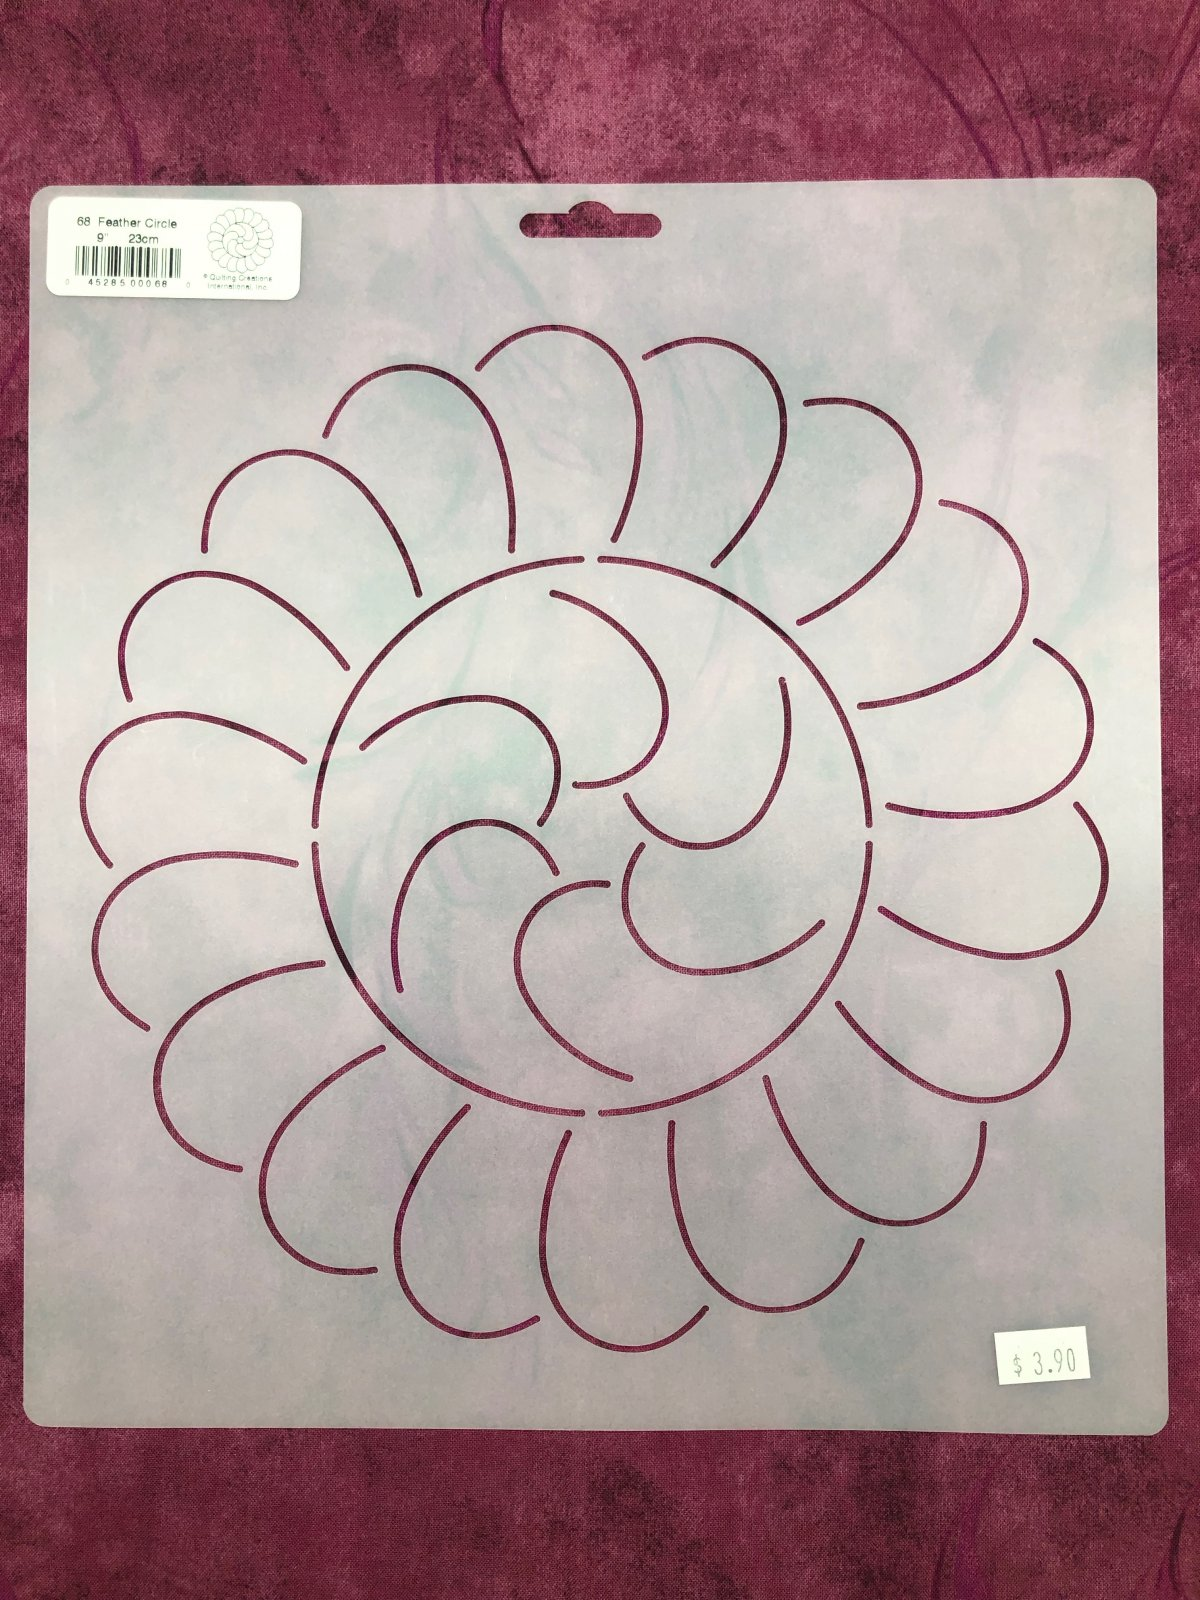 68 Feather Circle 9 Inch Stencil